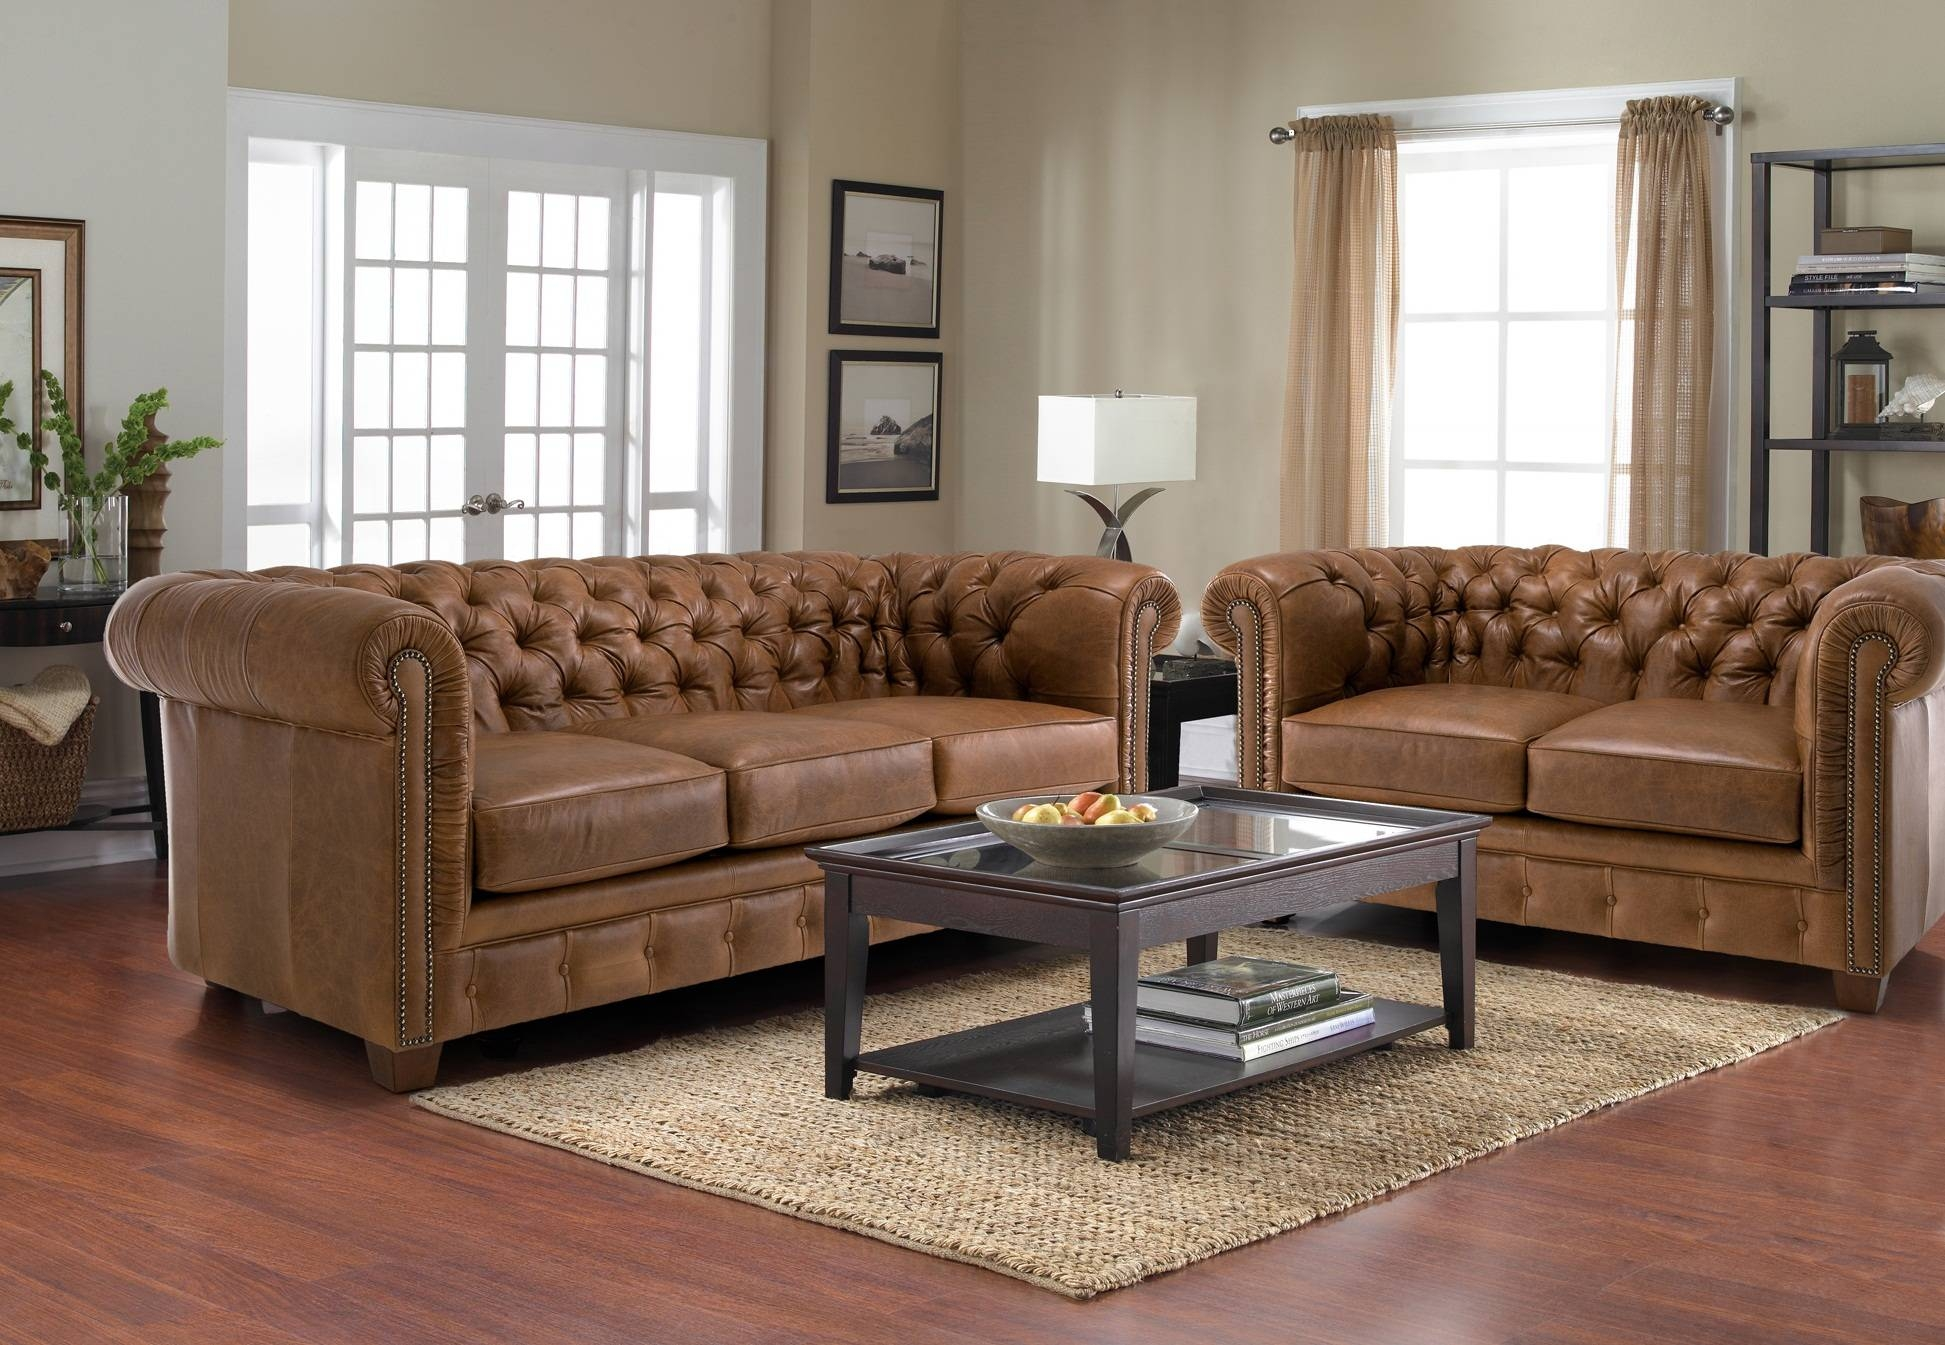 Old And Vintage Brown Leather Tufted Sofa With 2 And 3 Cushions In intended for Brown Tufted Sofas (Image 13 of 15)